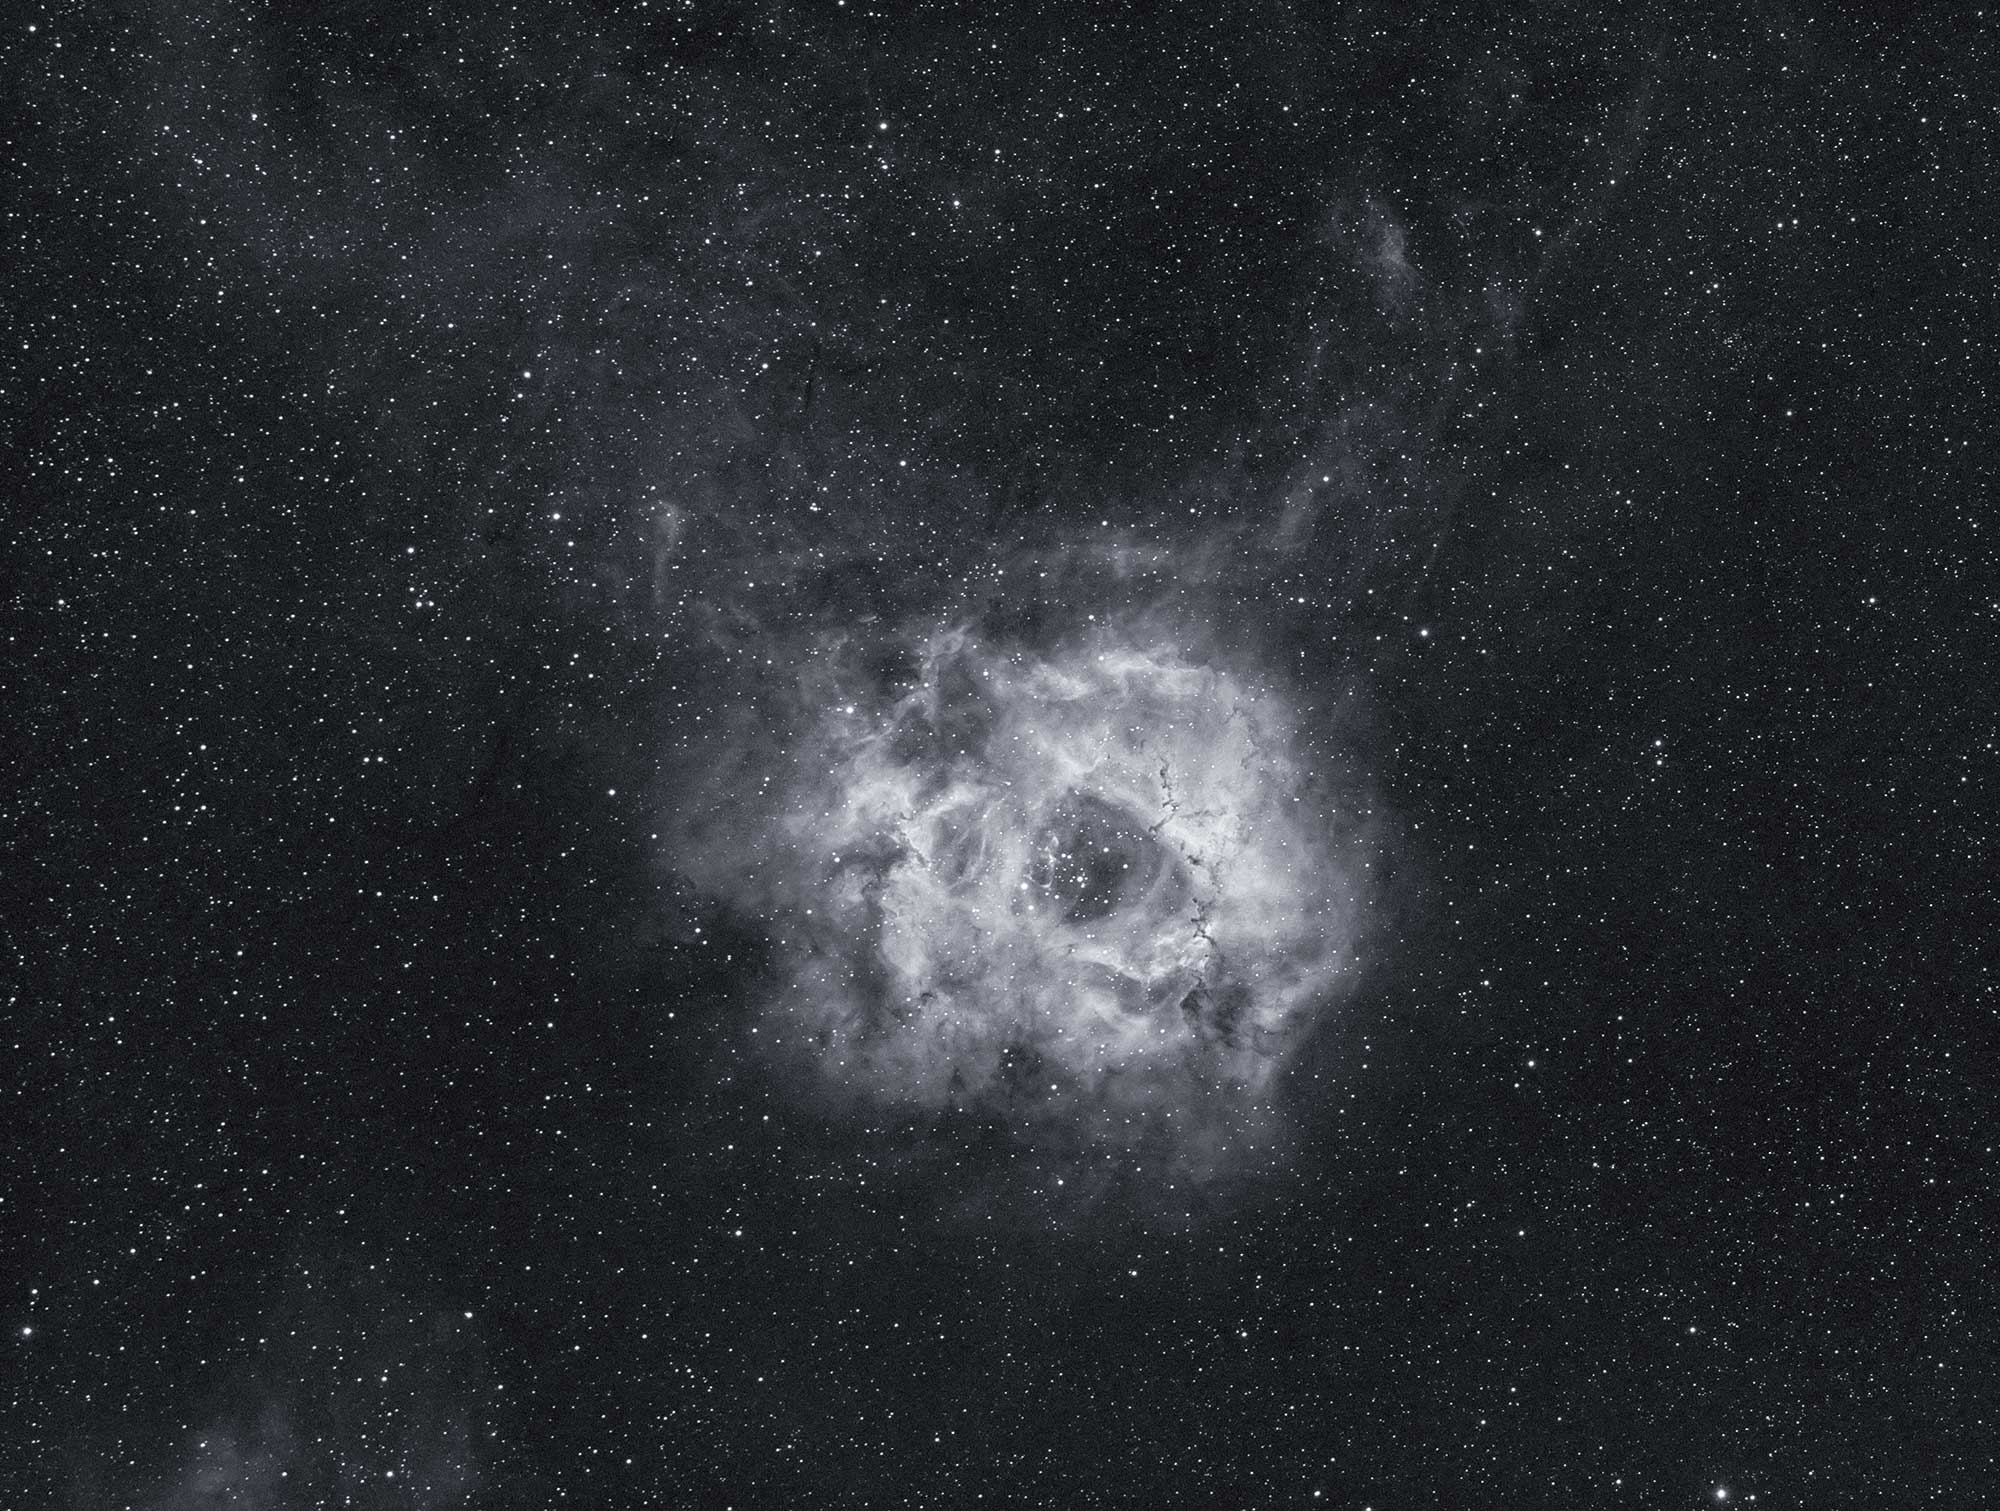 The Rosette Nebula in HA using the Borg55FL - 12*300 second subs calibrated with darks, flats and dark flats